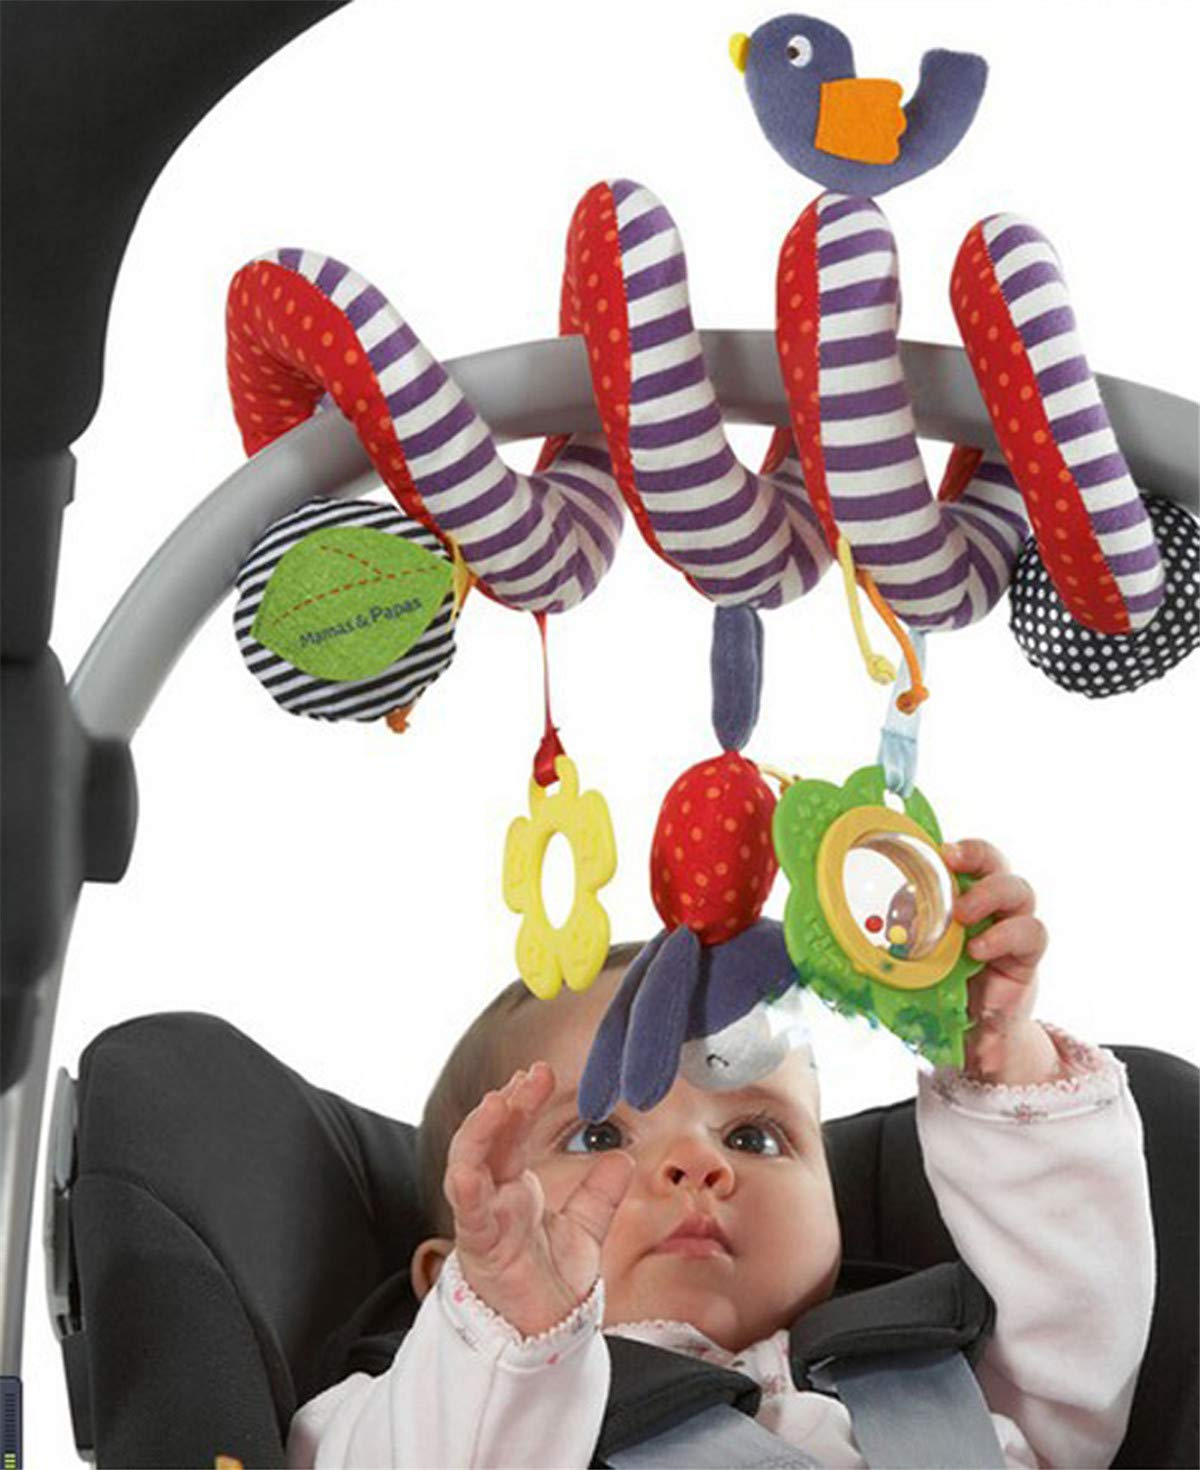 CdyBox Stroller Car Seat Toy for Baby/Cot Spiral Hanging Toy Entertainment BB Travel Activity